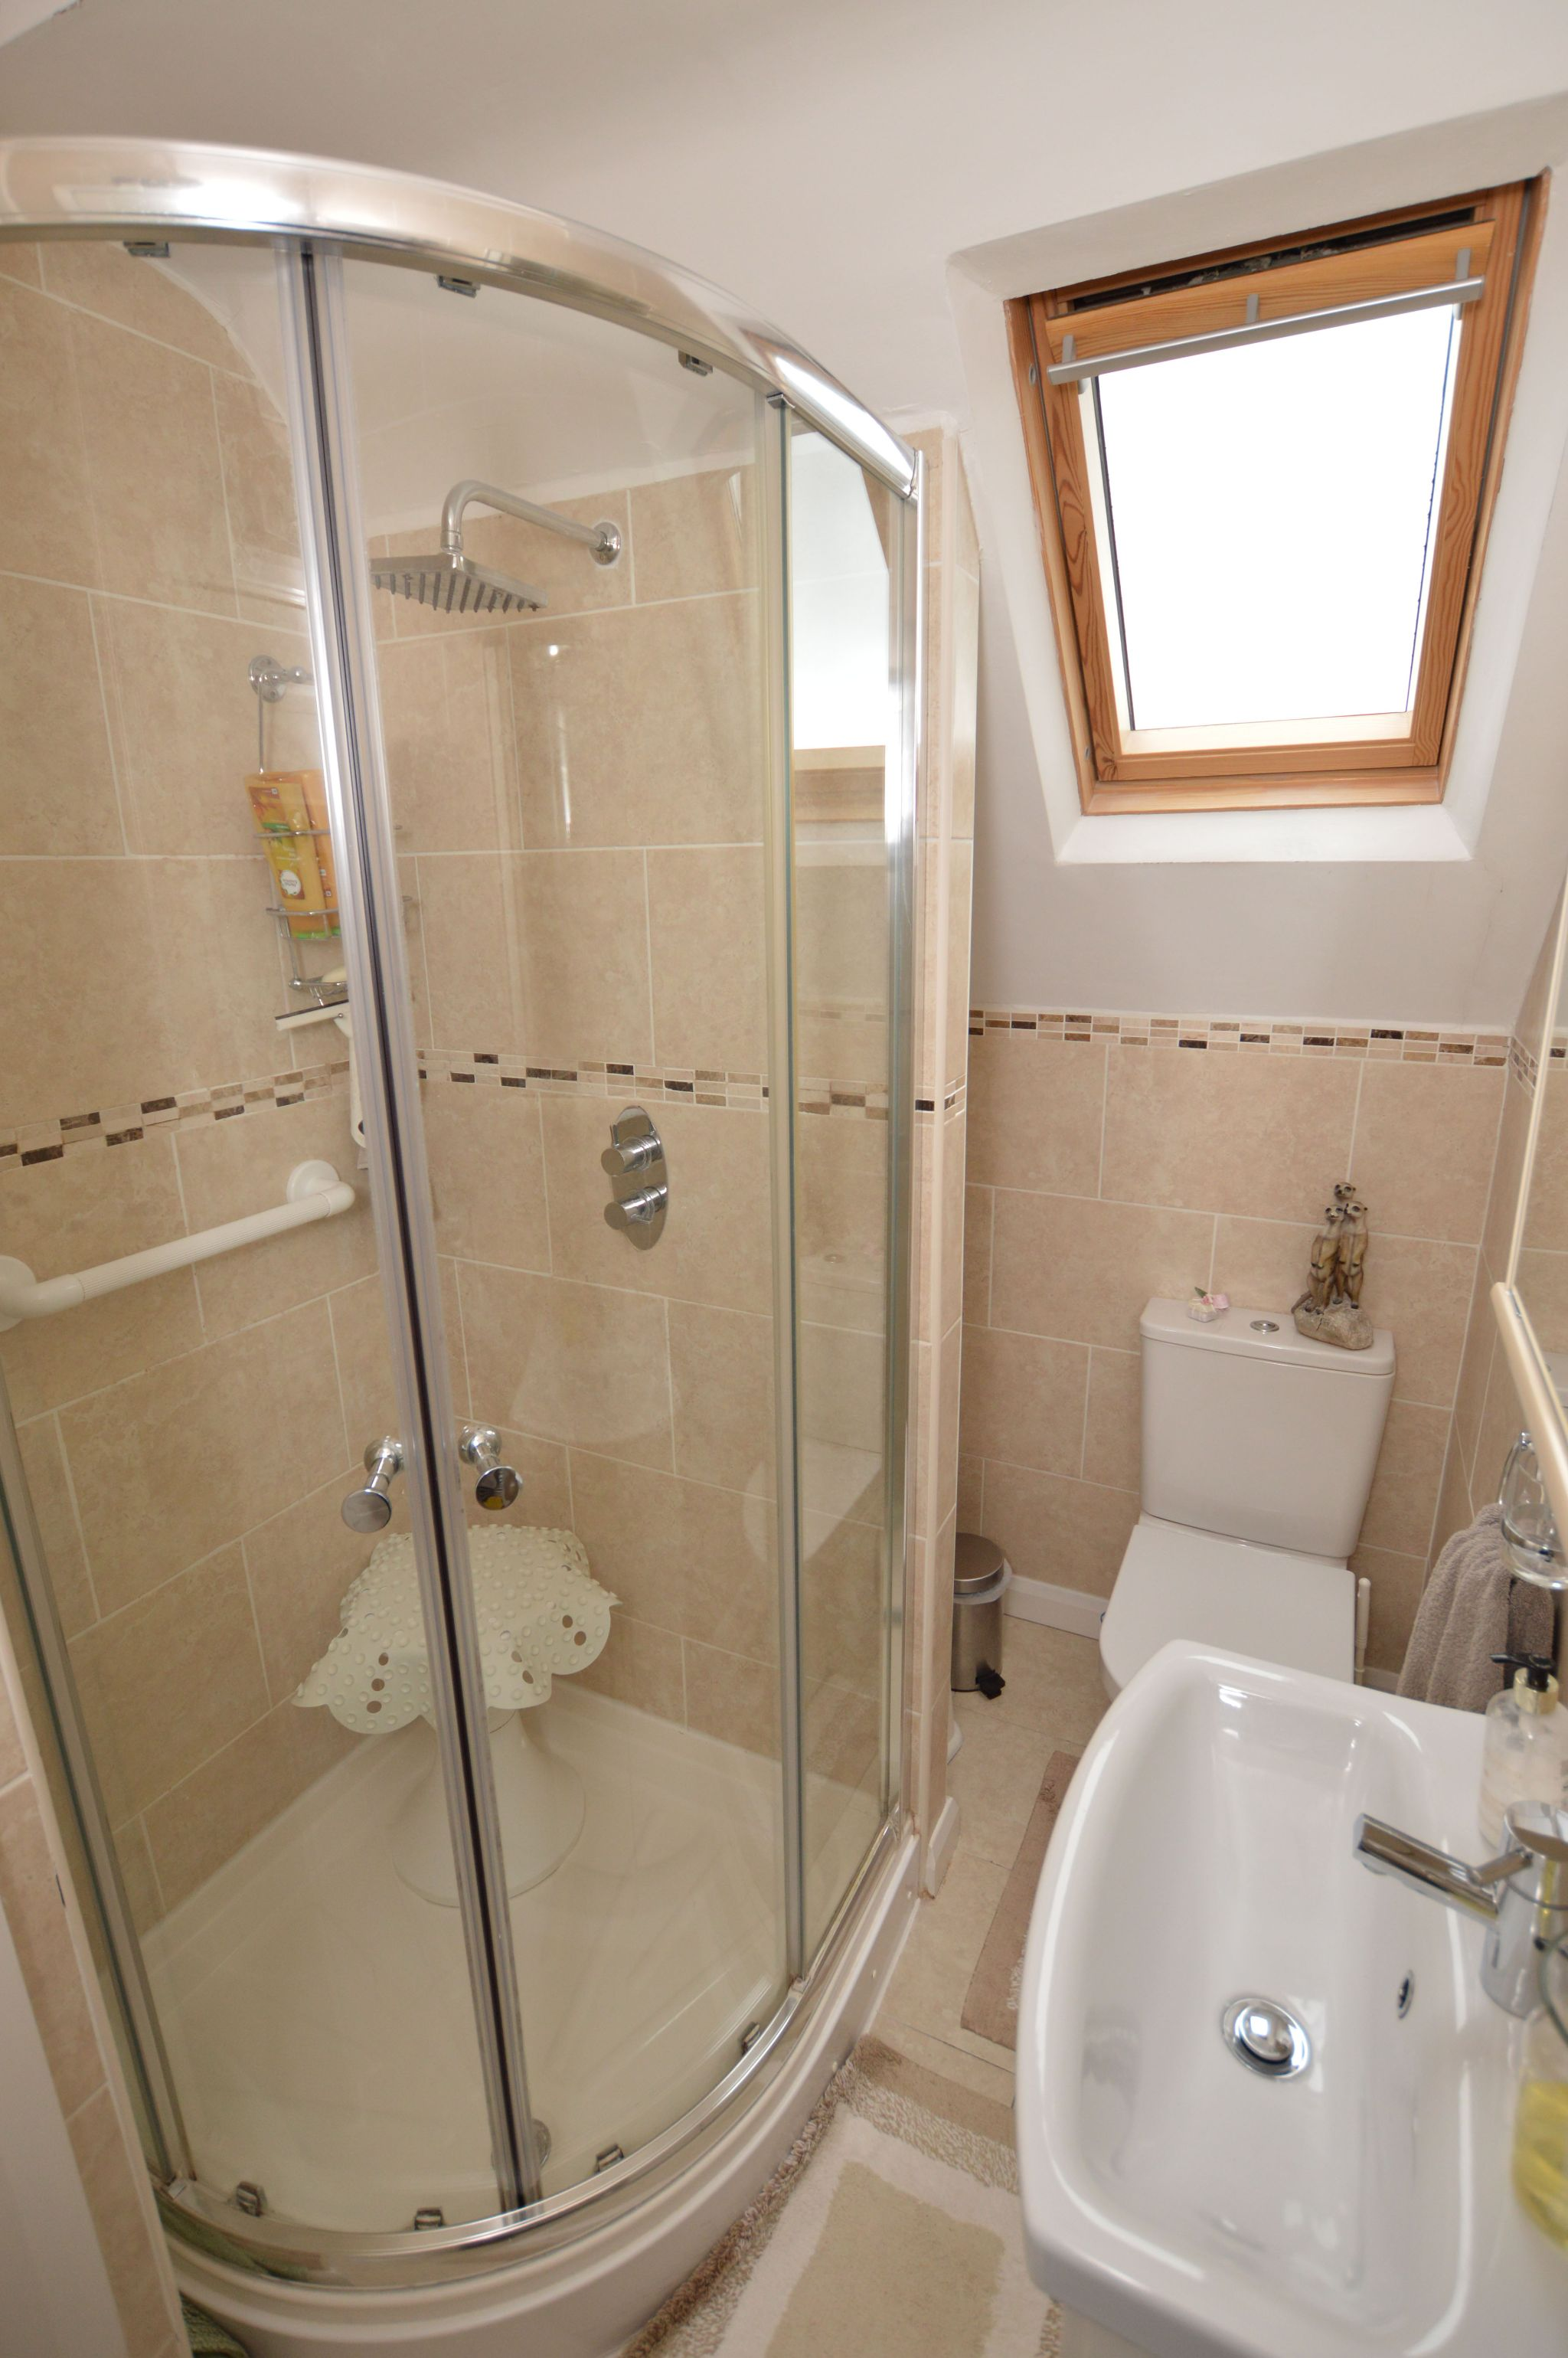 4 bedroom detached house For Sale in Abergele - First Floor Shower Room